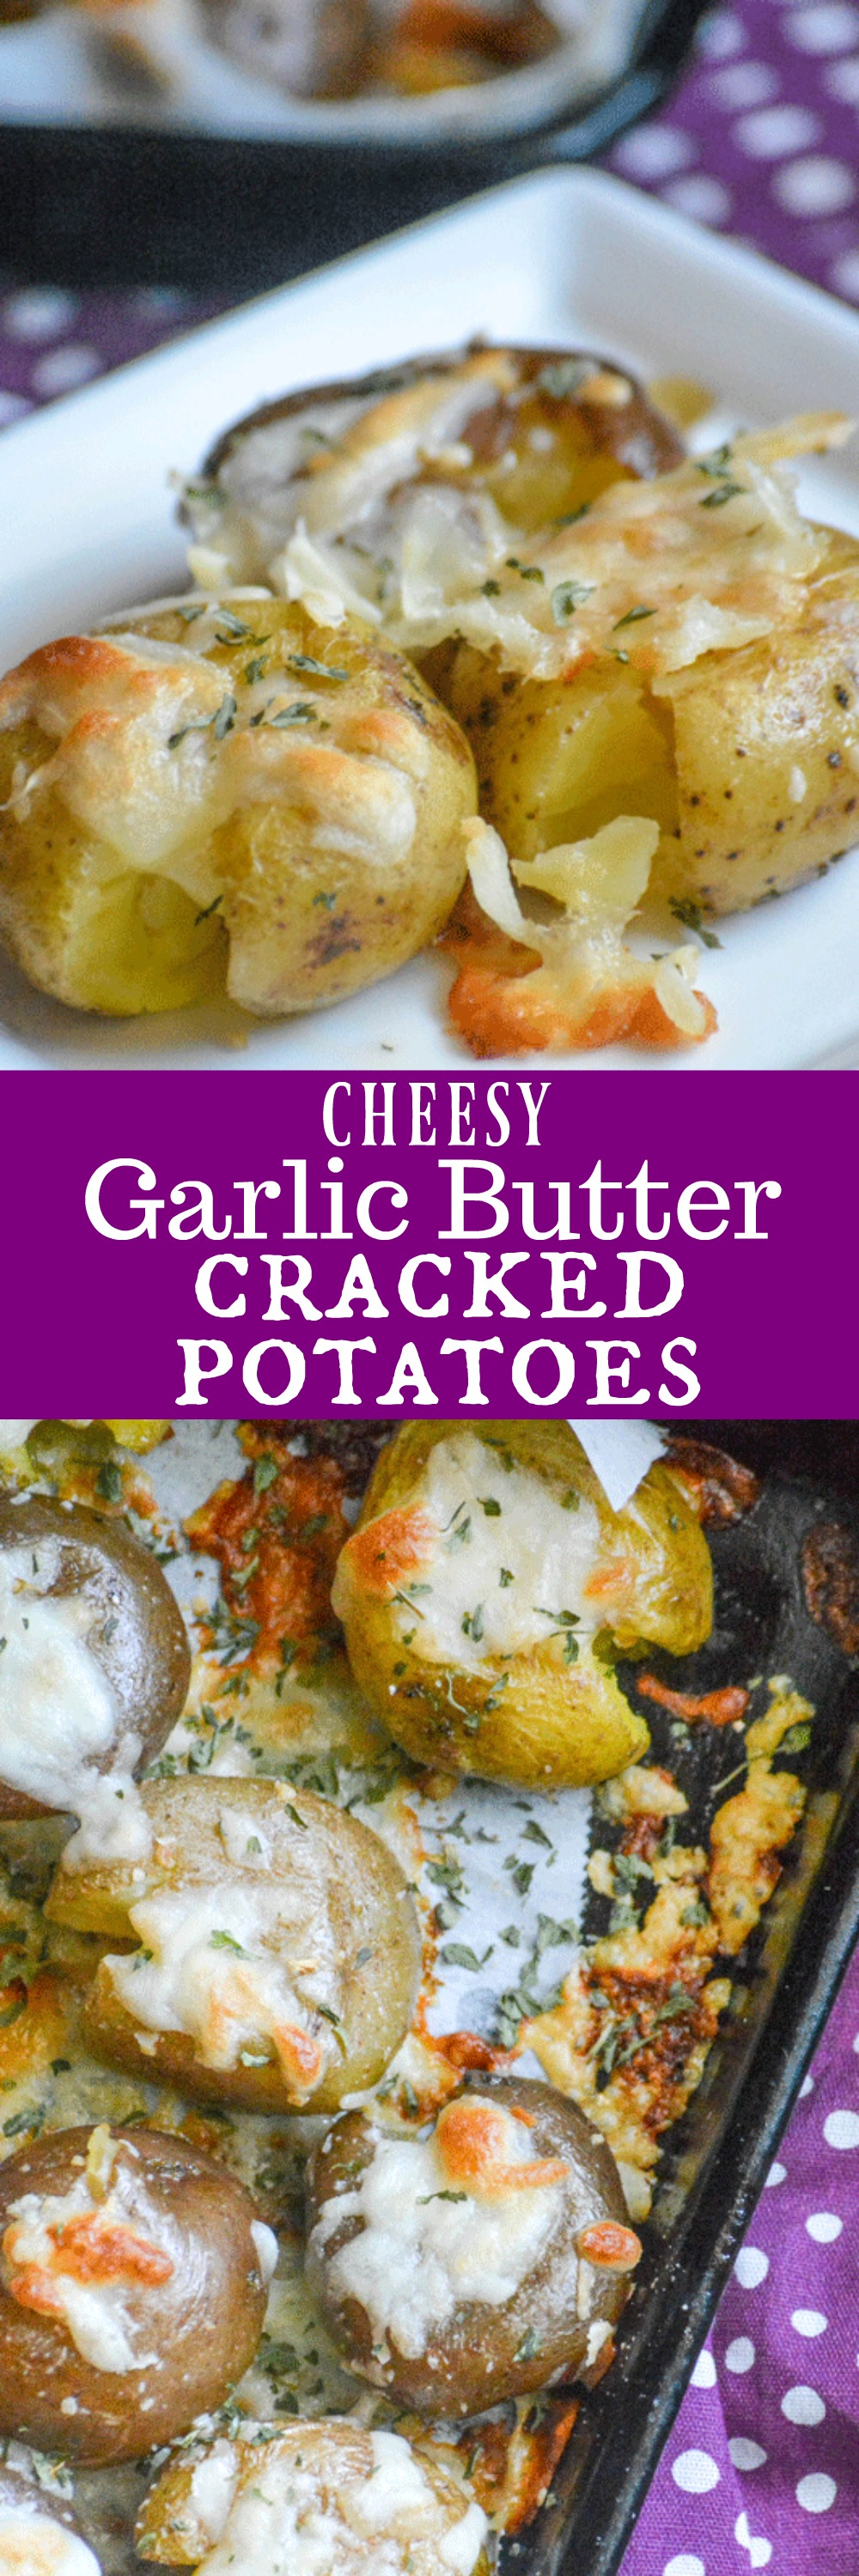 Crisp skinned, roasted baby potatoes are drizzle din garlic butter and topped with an ooey gooey, golden brown mozzarella crust. Serve these Cheesy Garlic Butter Cracked Potatoes with your favorite meat, and give a whole new meaning to a simple dinner of meat and potatoes!